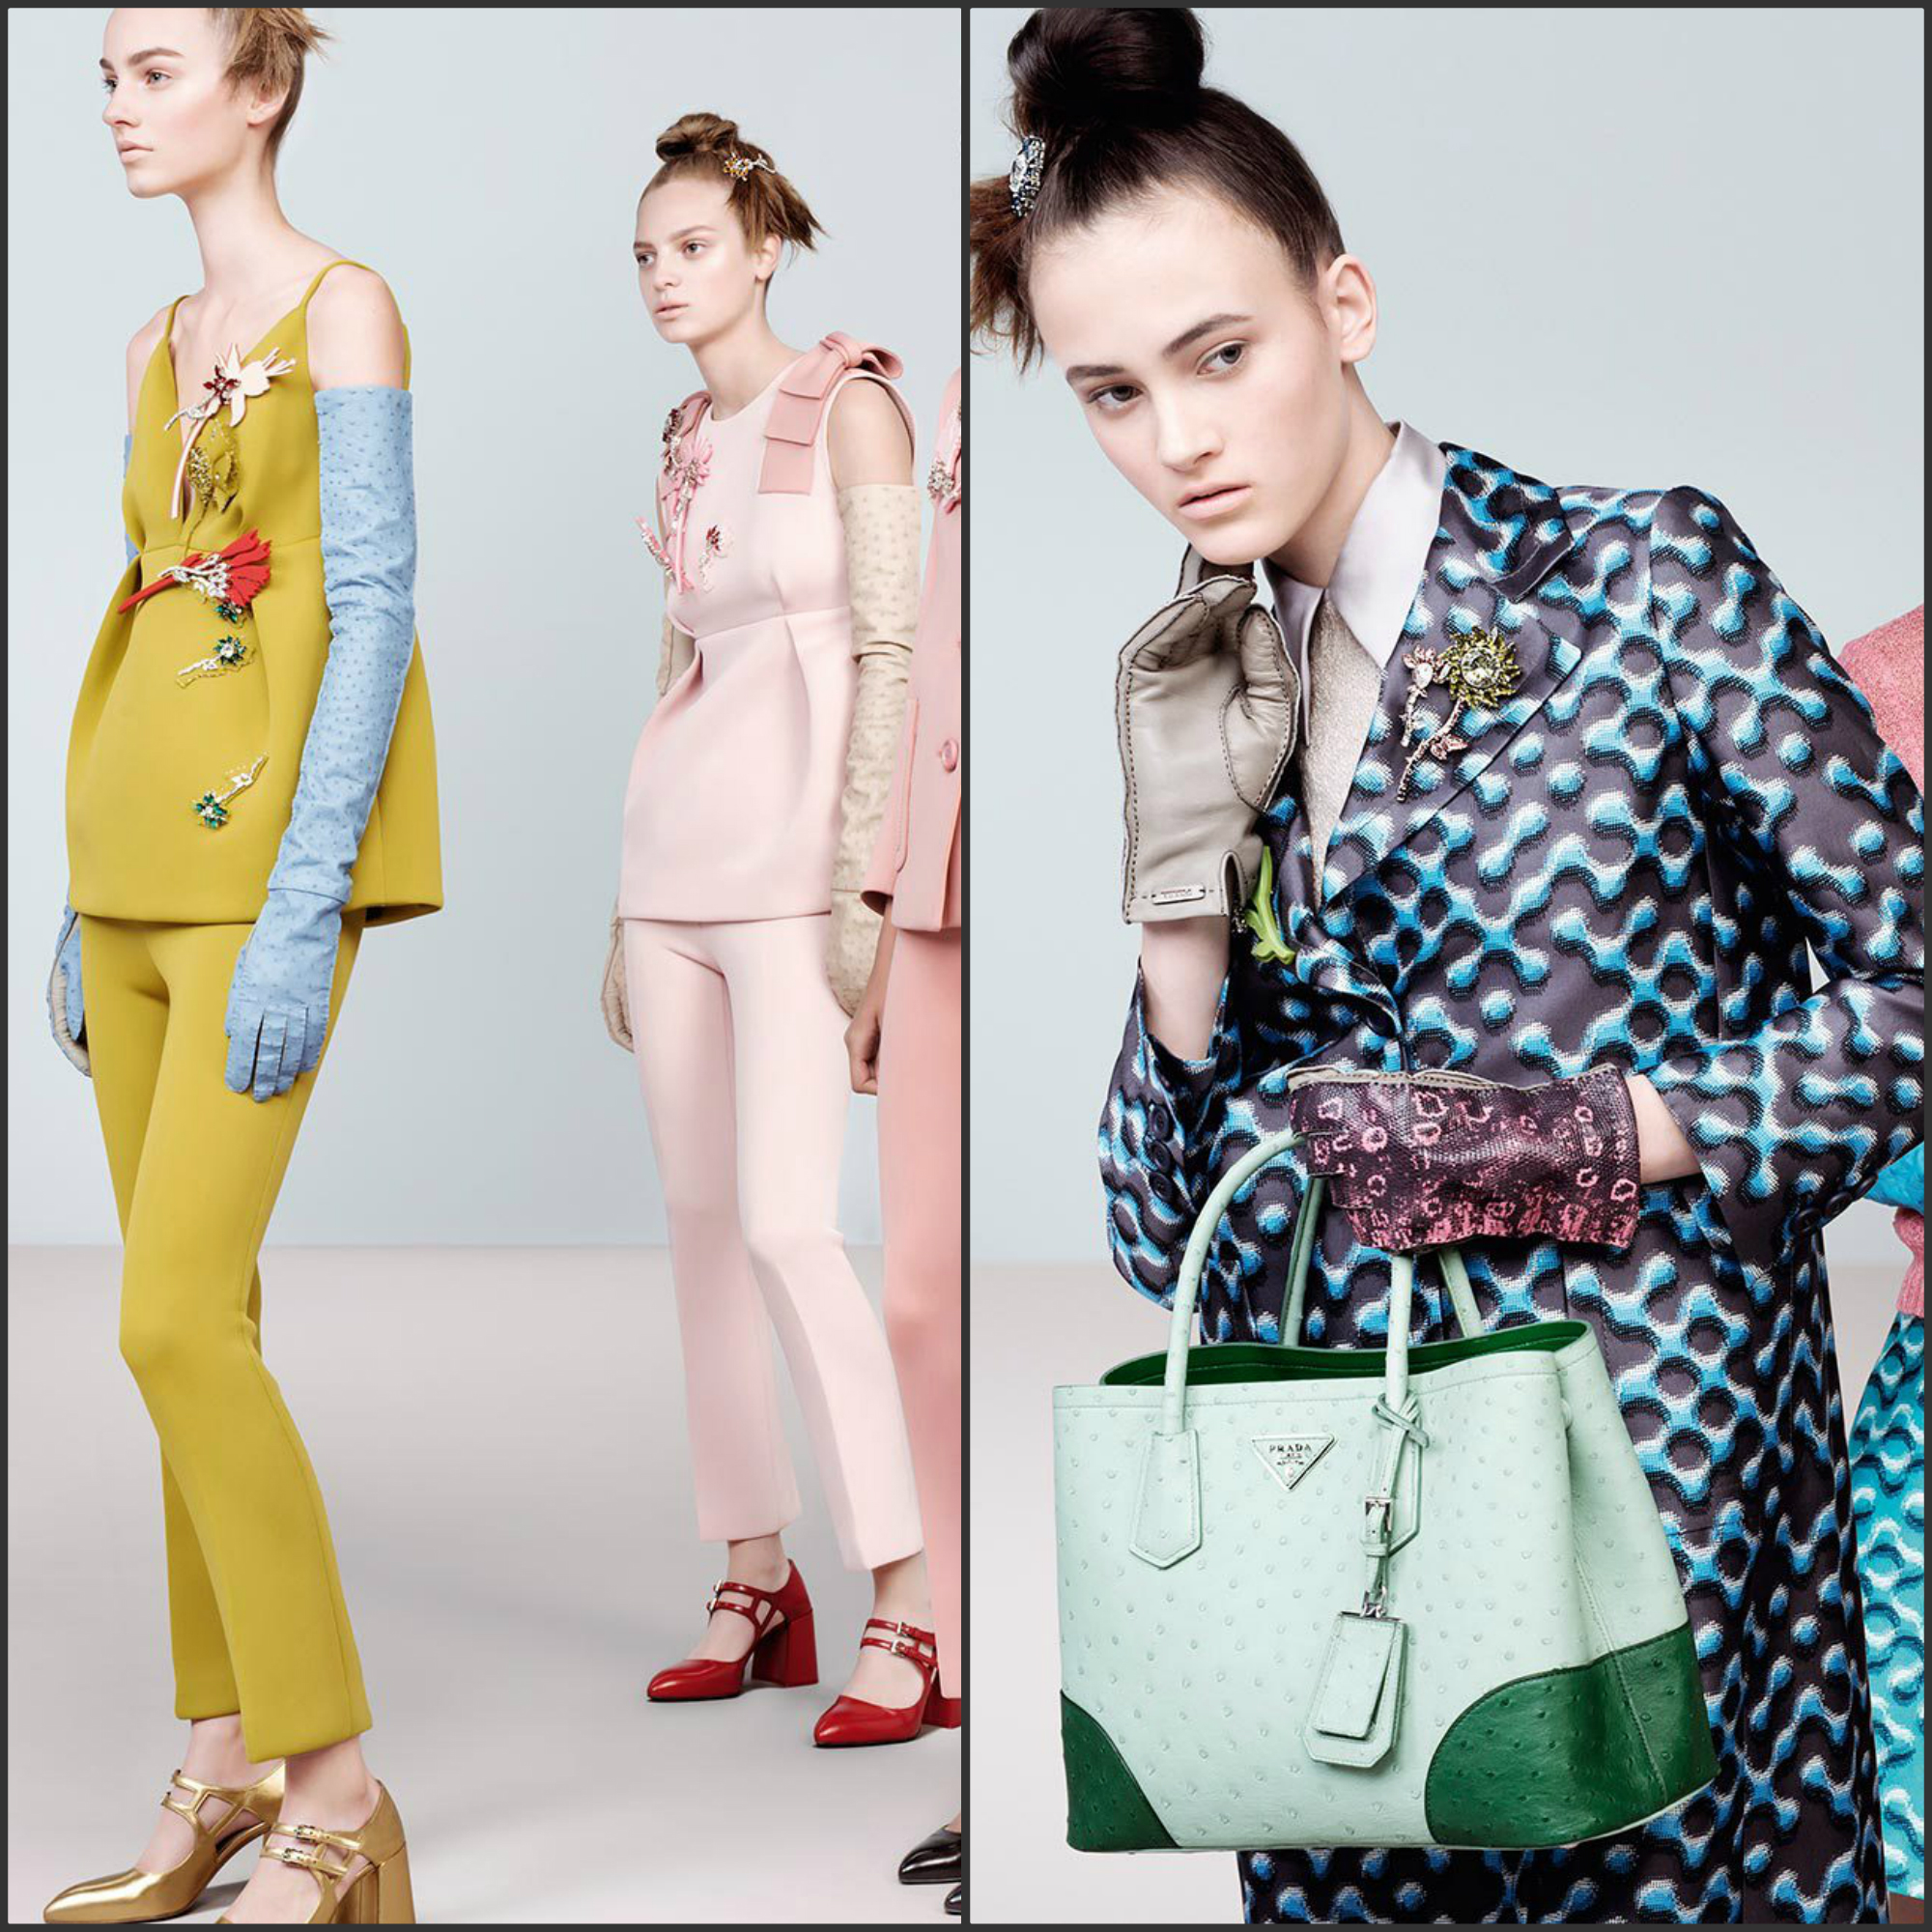 prada-womenswear-fall-winter-ad-campaign